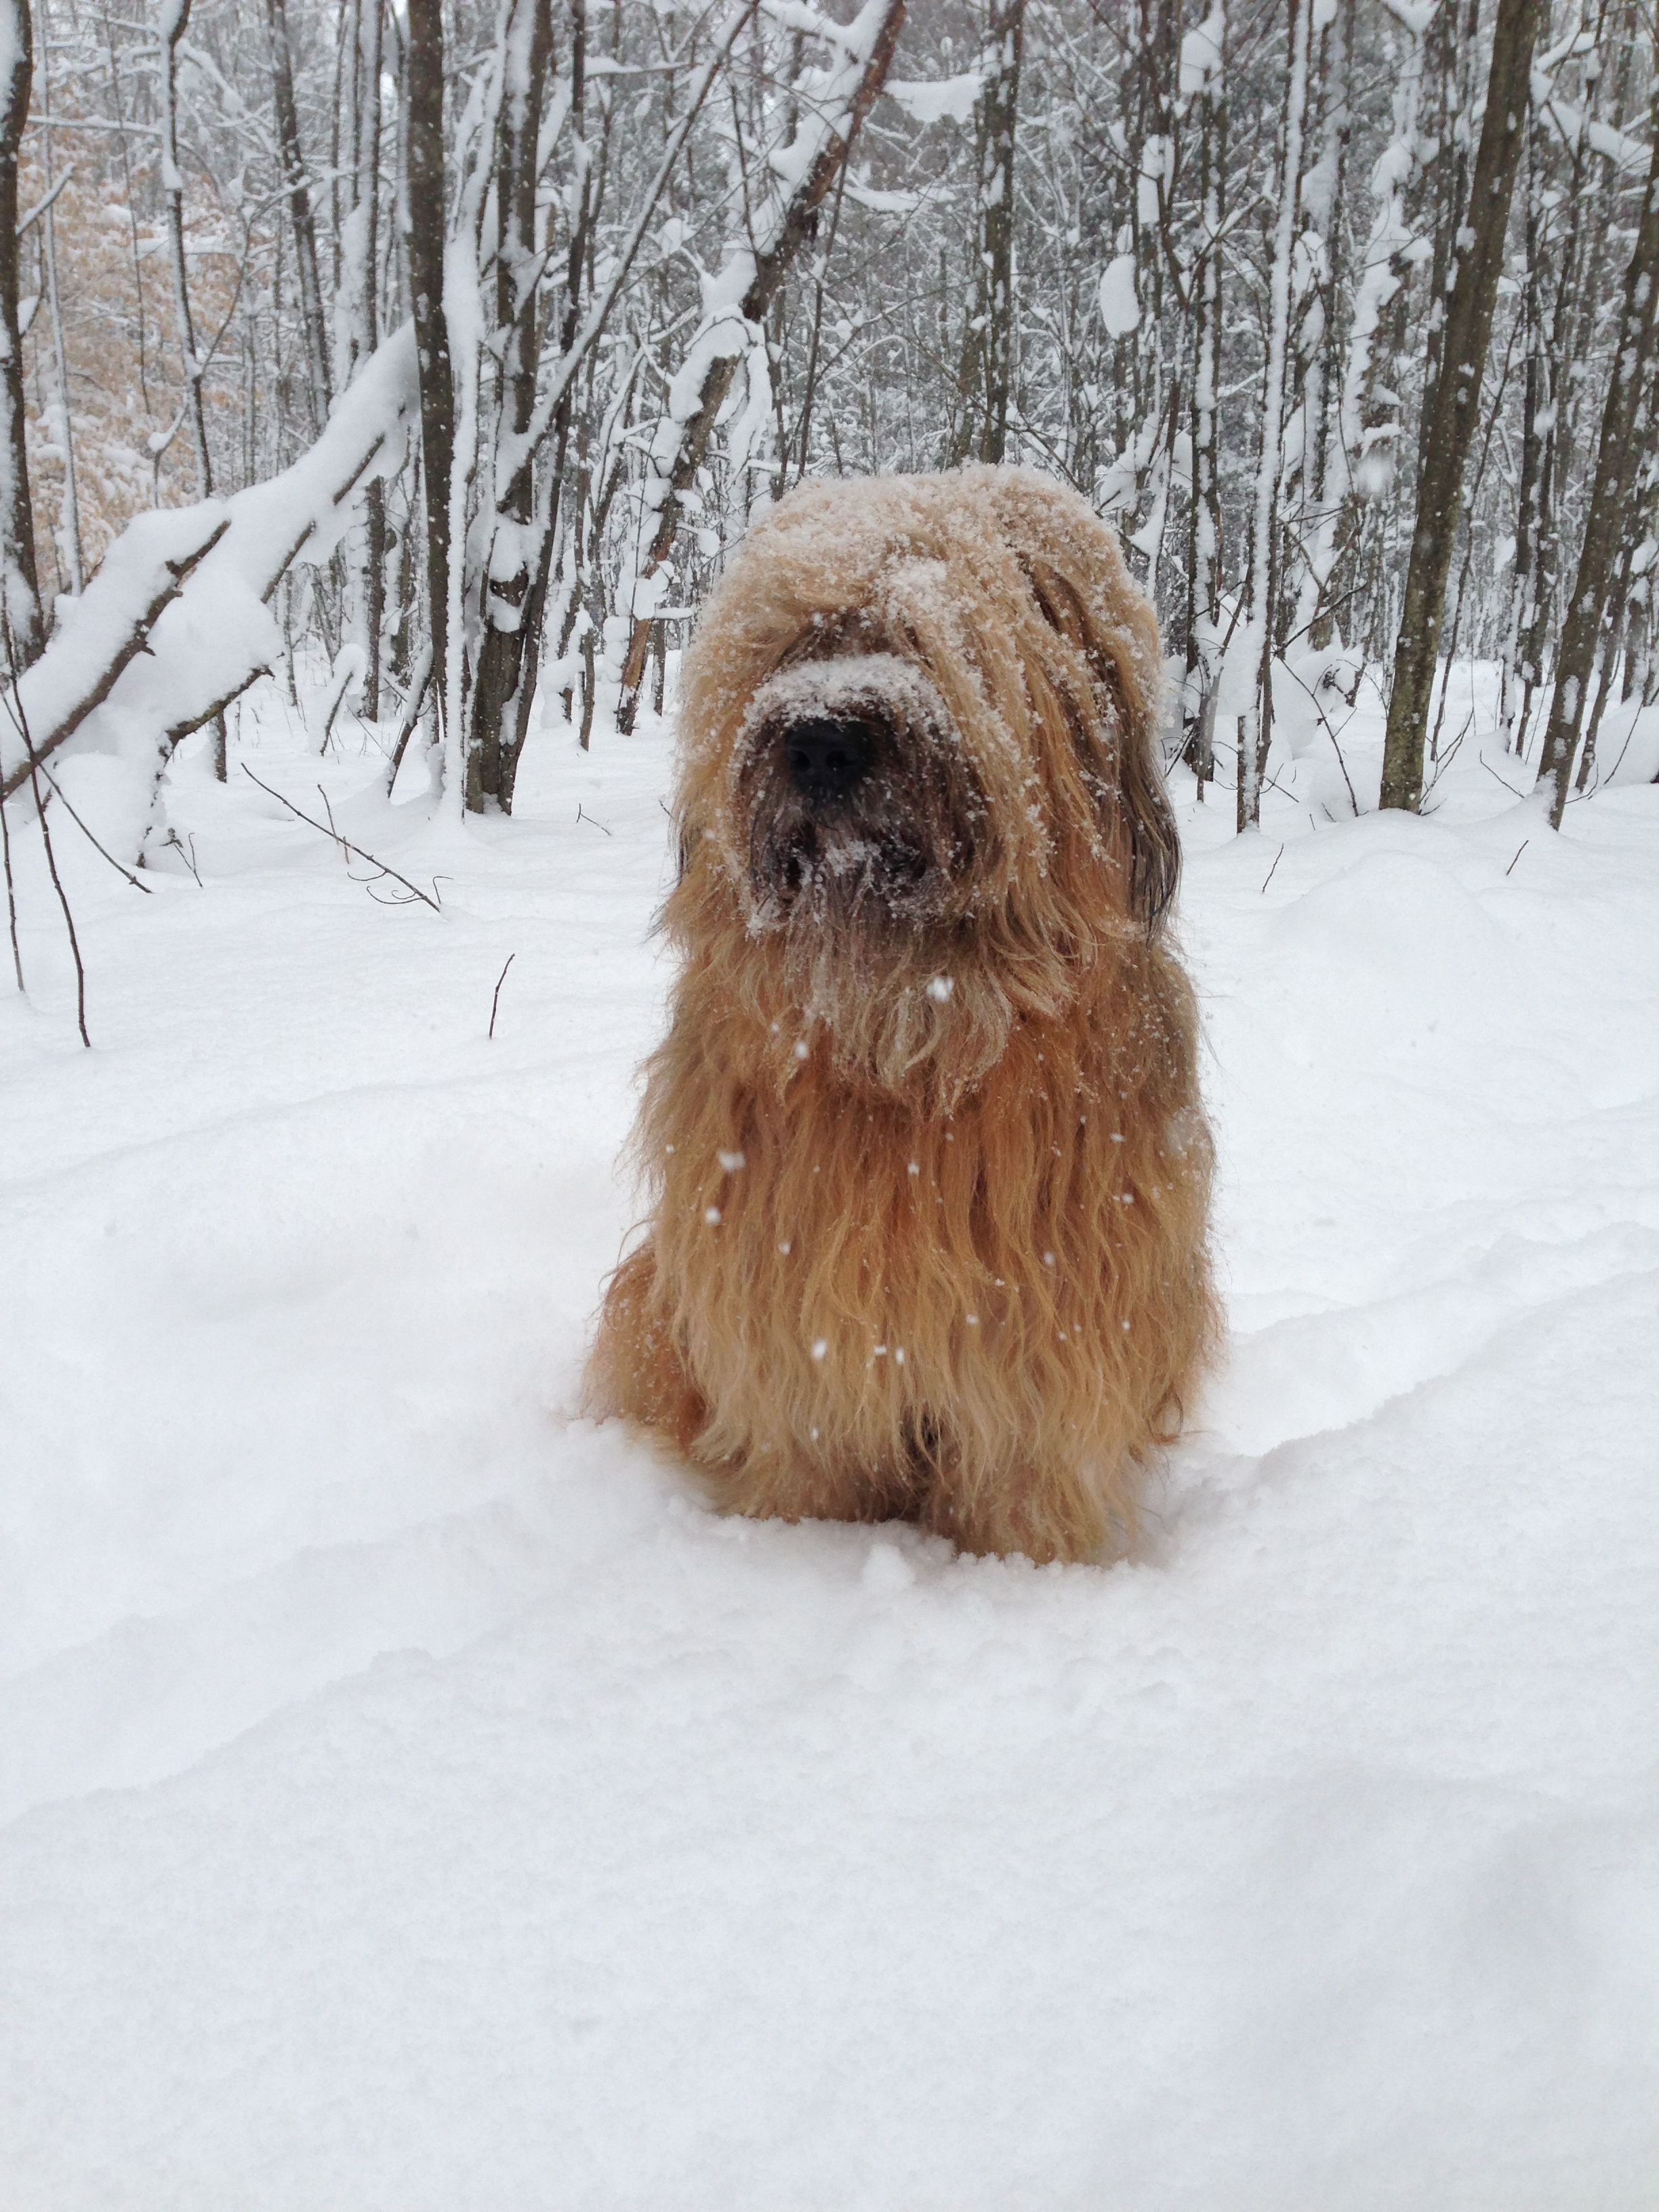 Briard / Berger de Brie Dog Puppy H wie Hund ️ Dog